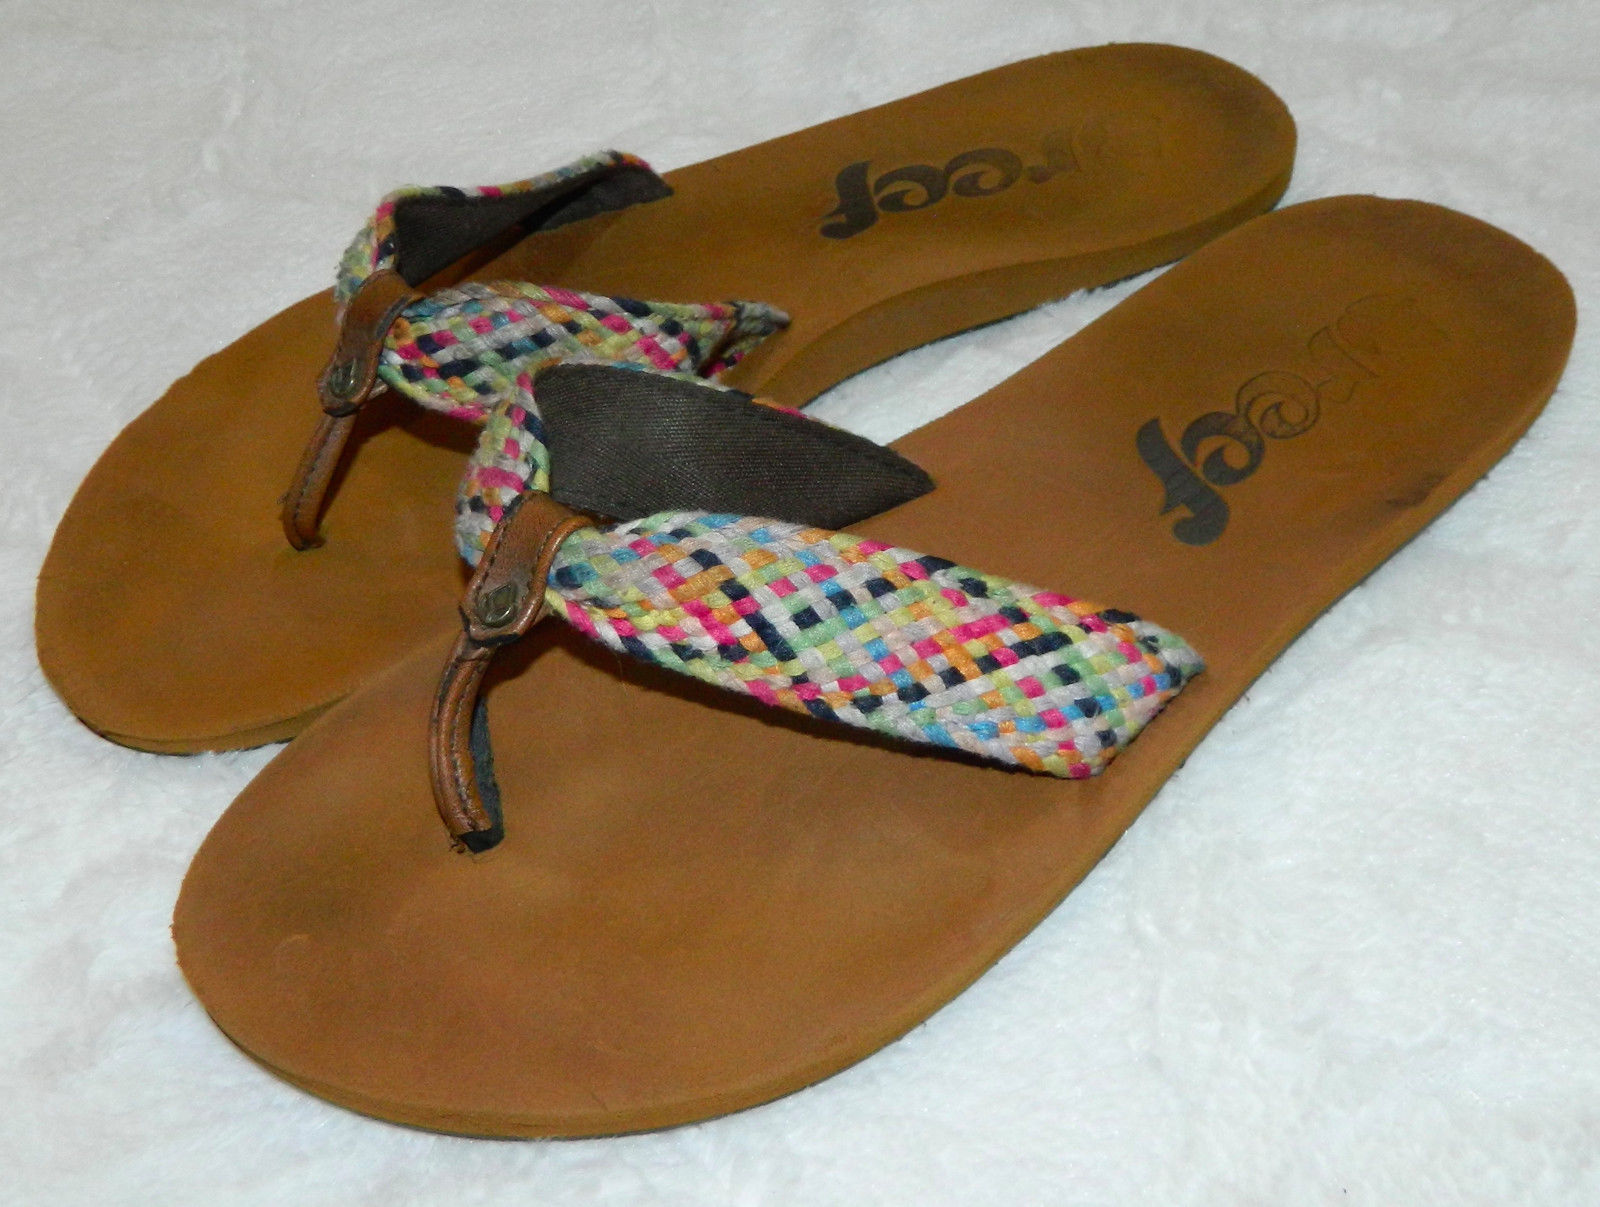 f49fdcc04 Reef Womens 11 Flip Flops Thongs Braided and 50 similar items. 57